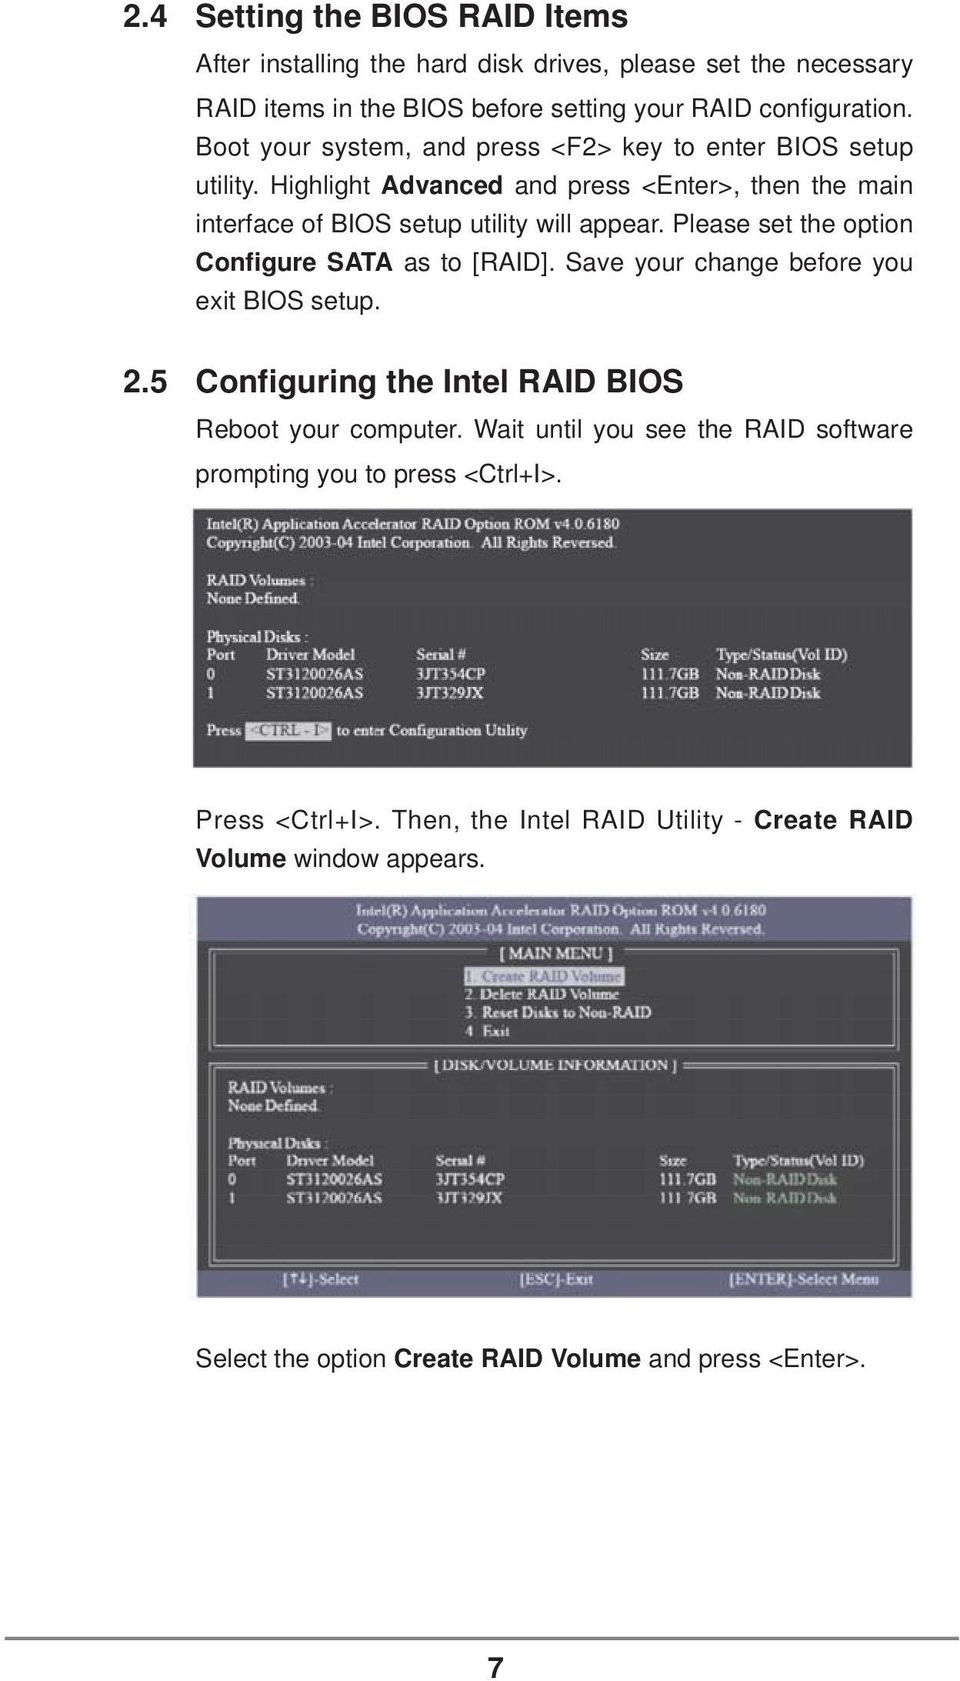 Please set the option Configure SATA as to [RAID]. Save your change before you exit BIOS setup. 2.5 Configuring the Intel RAID BIOS Reboot your computer.